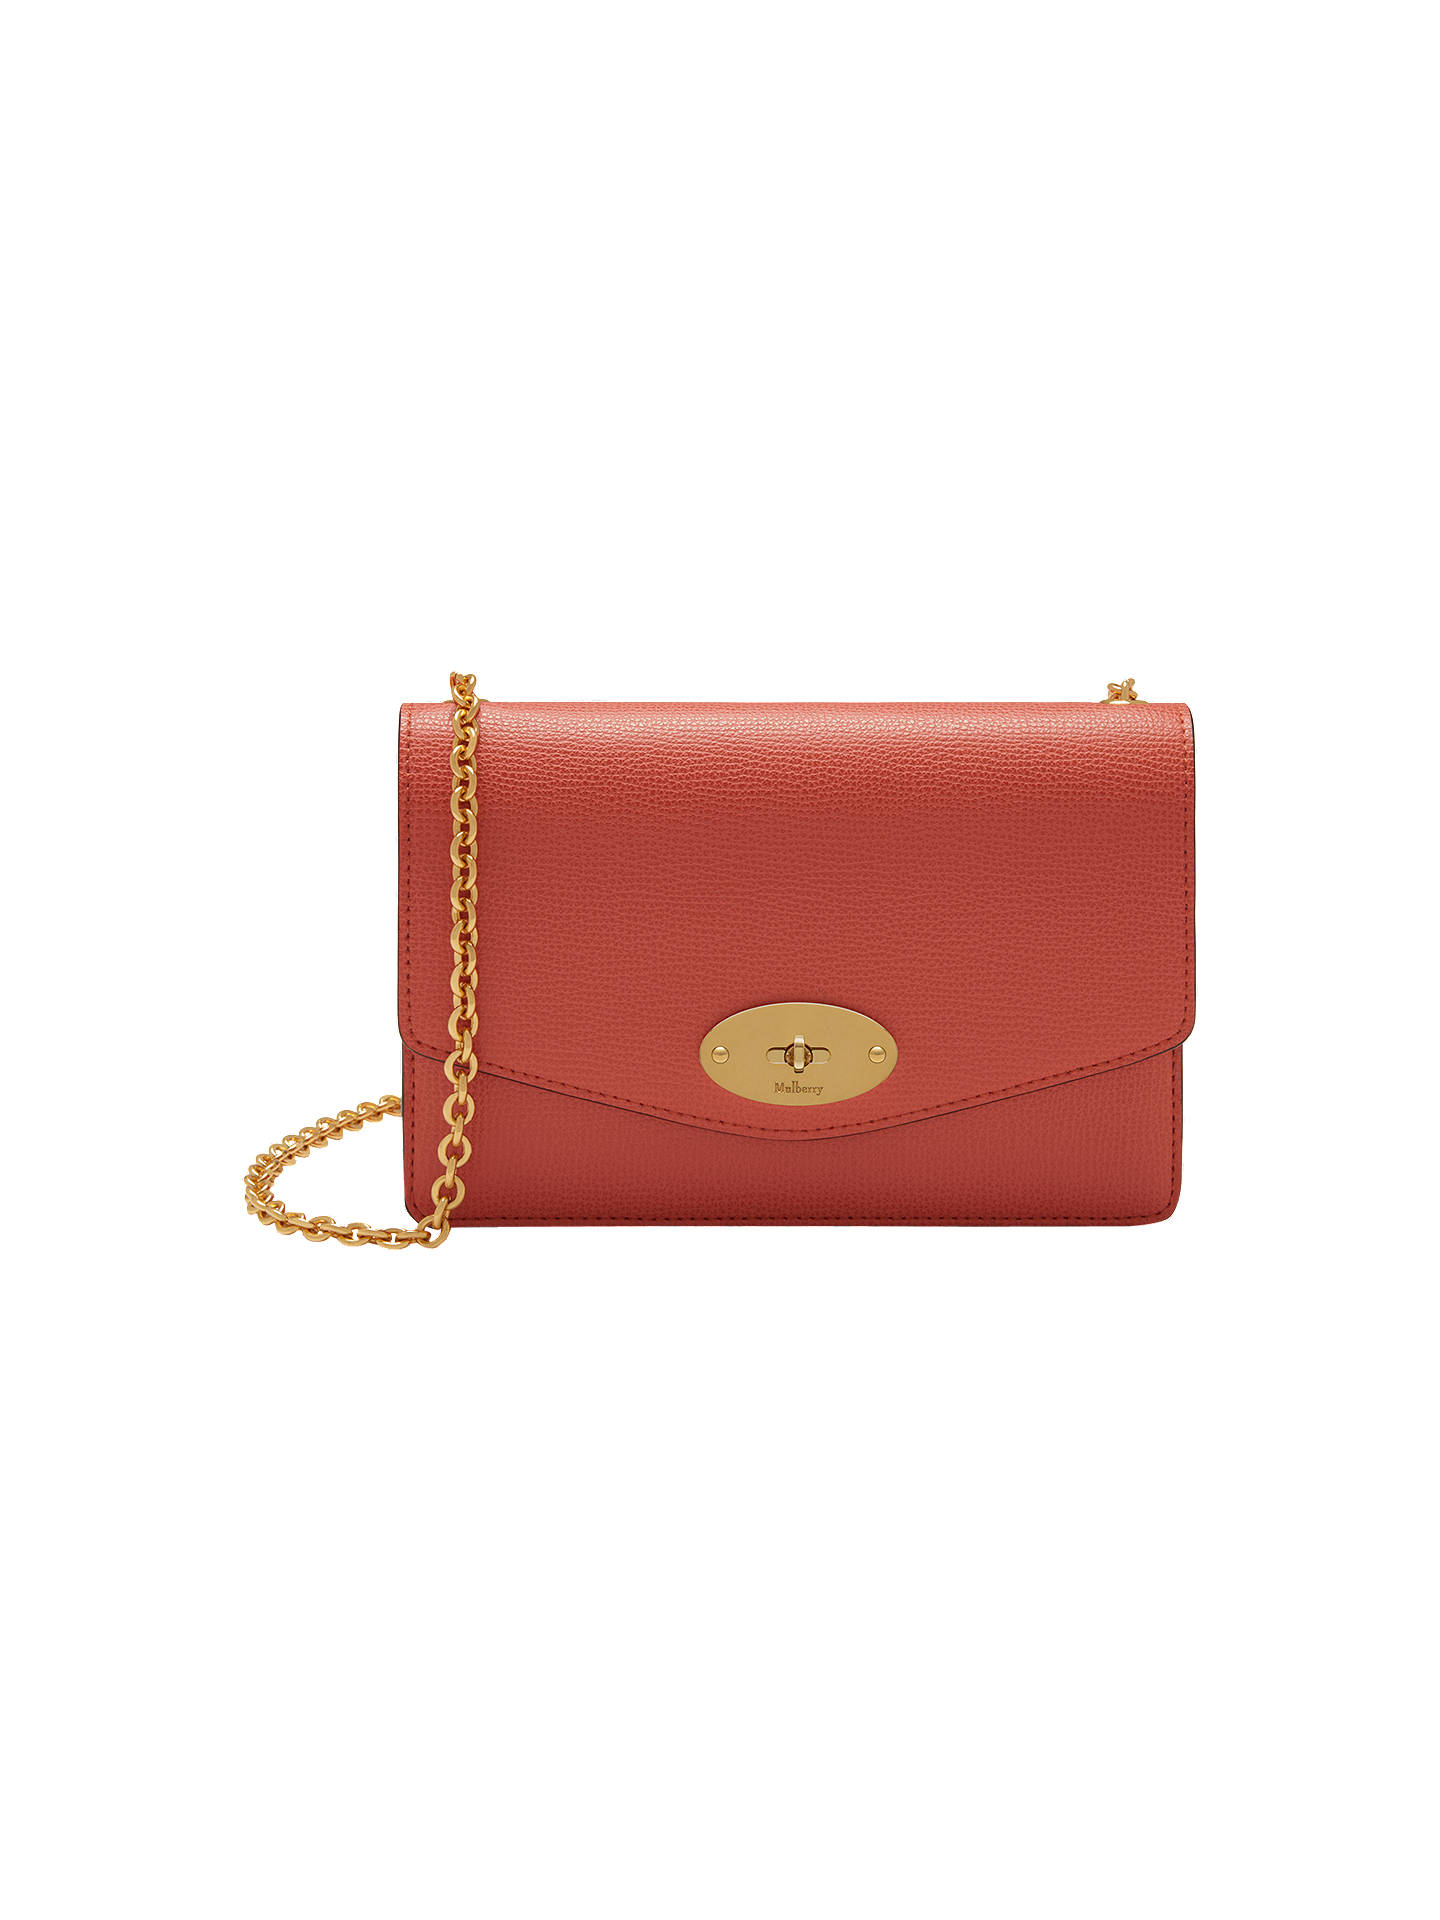 6cf4fc7a58fe Mulberry Darley Small Grain Leather Cross Body Bag at John Lewis ...